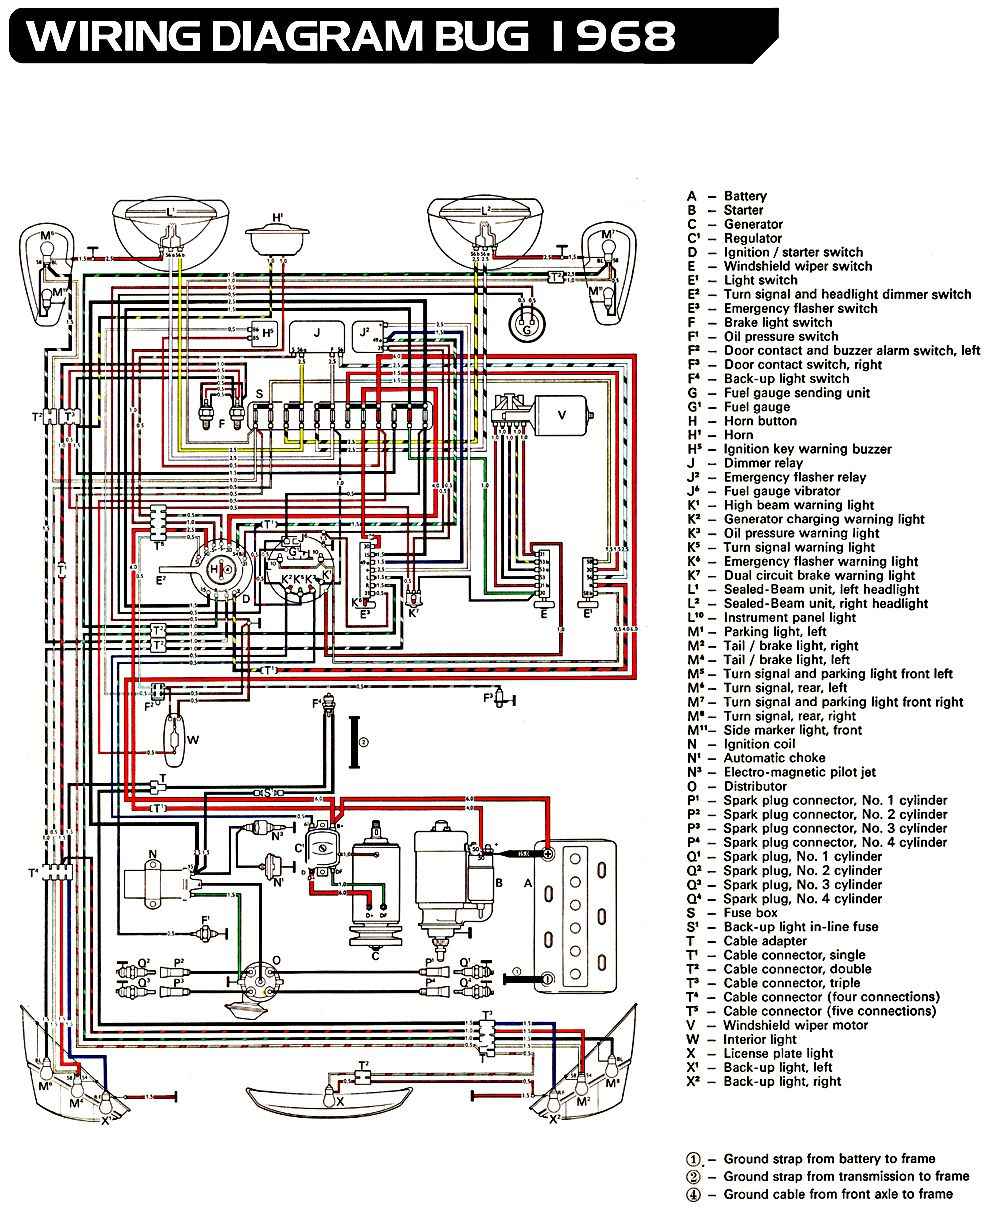 small resolution of vw bug ignition wiring diagram 73 vw wiring diagram free vw 73 vw beetle coil wiring 73 vw bug ignition wiring